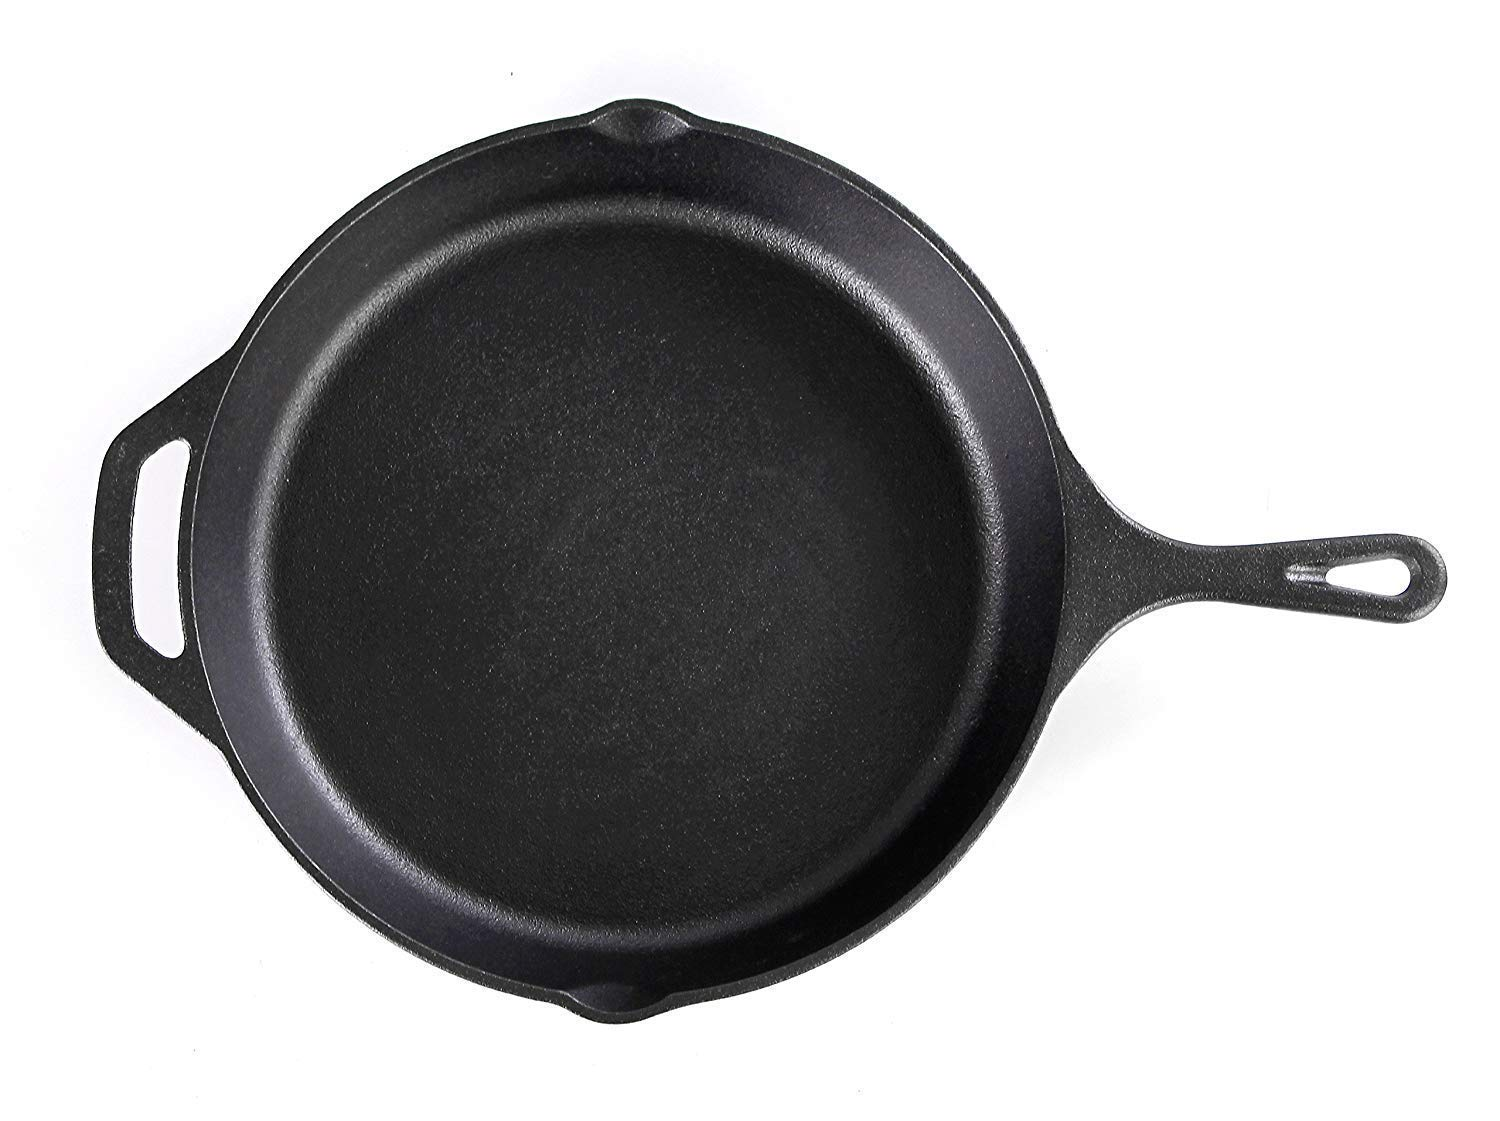 EWEI'S HomeWares Cast Iron Skillet, 12 inch Pre Seasoned Skillet Cast Iron Pan Ewei' s Homewares Cast Iron Skillet-12 inch updated